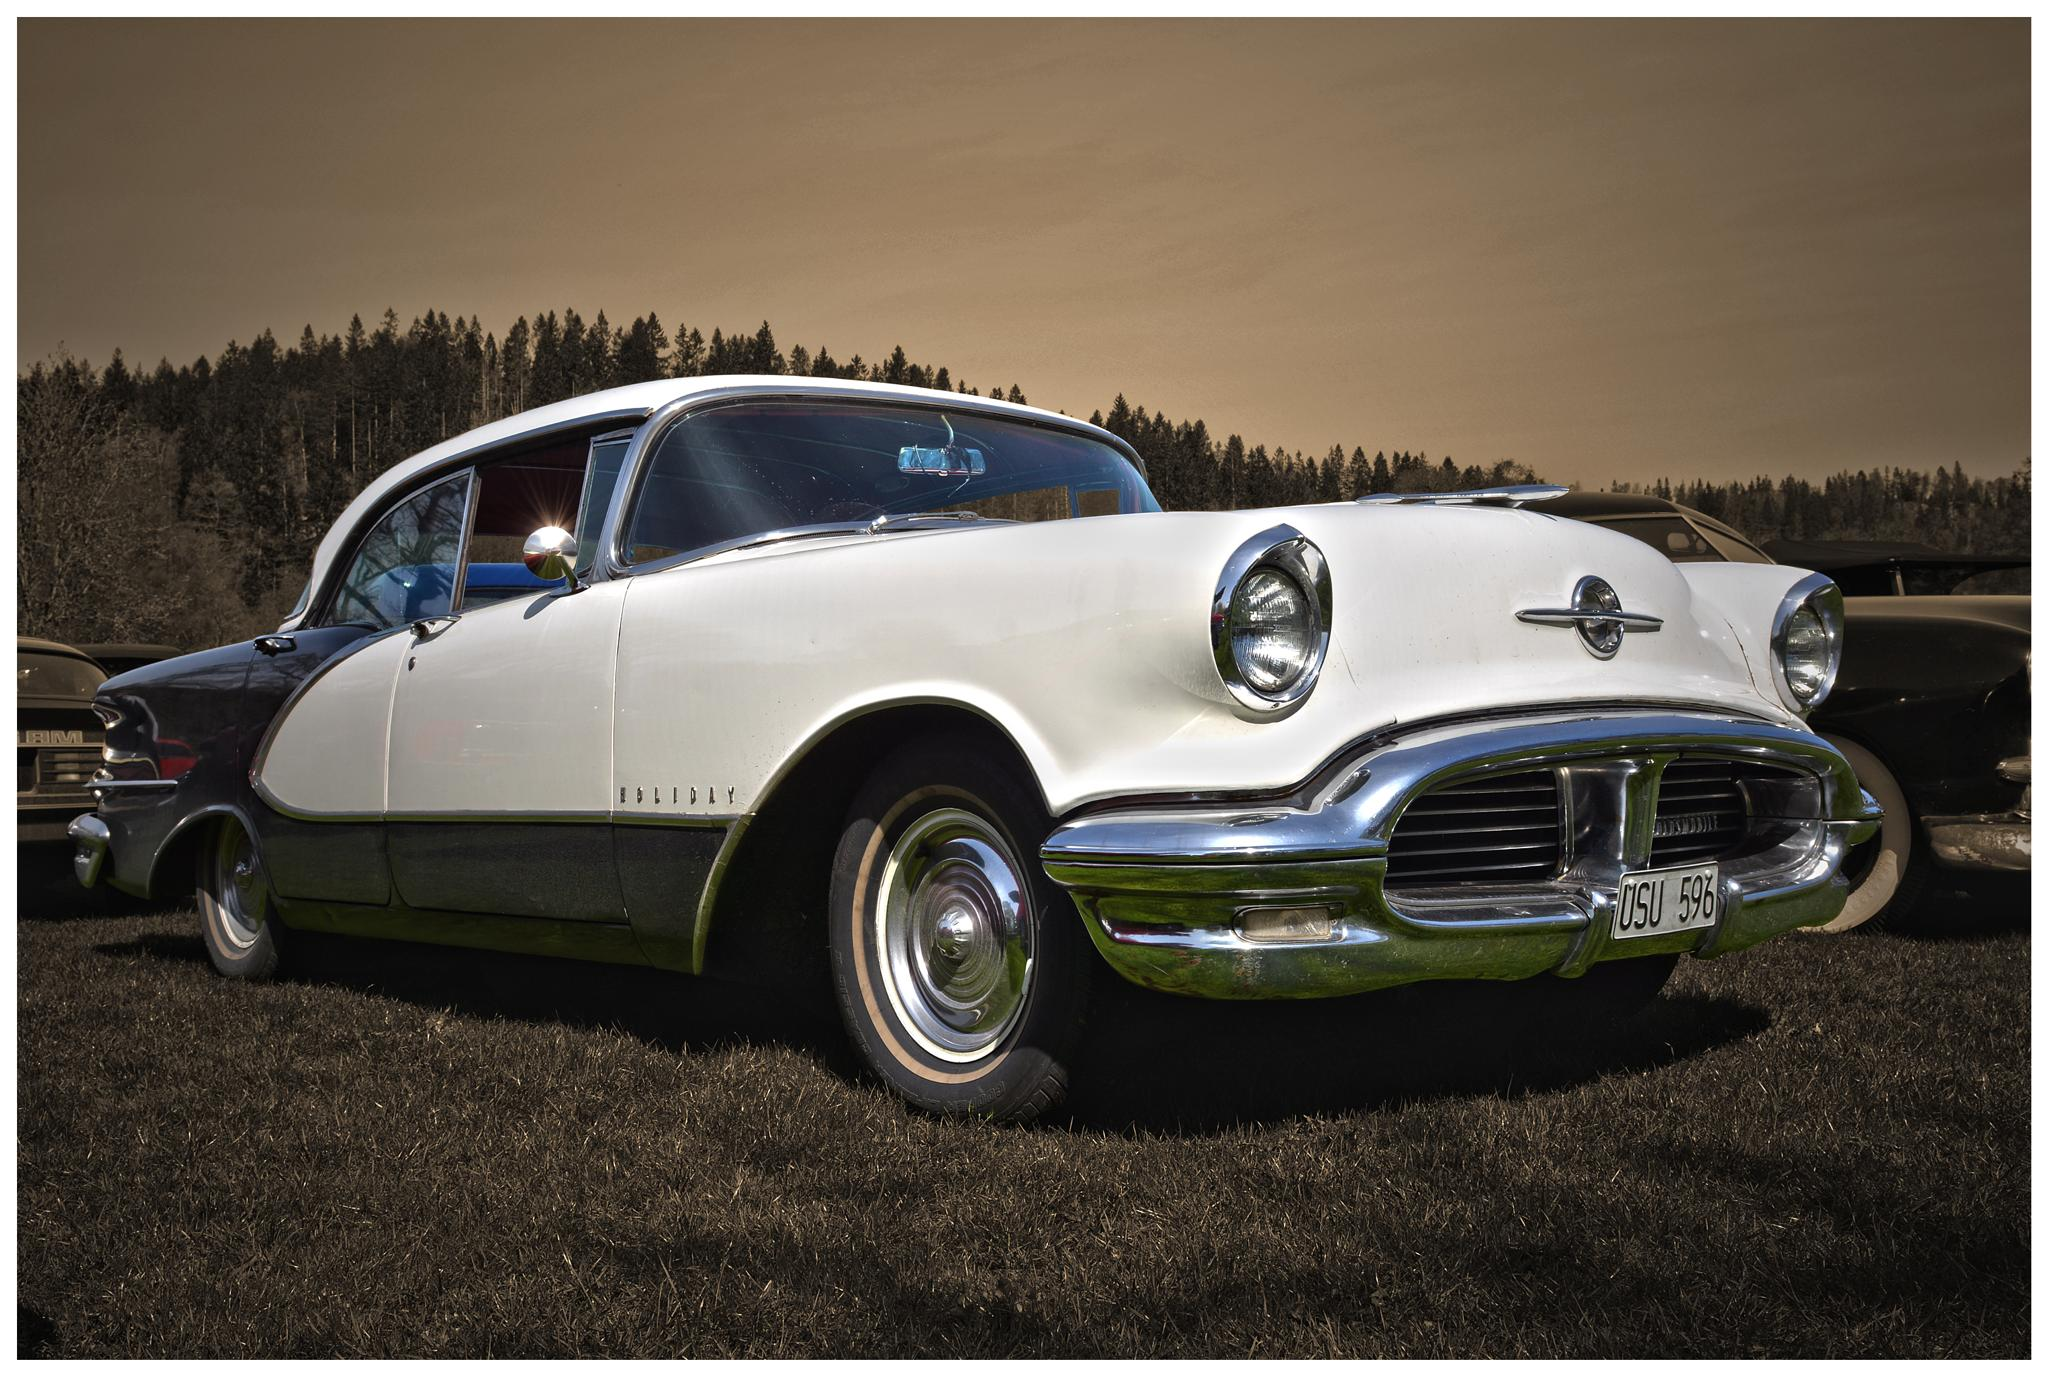 1956 Oldsmobile Holiday 4dr by Linda Persson